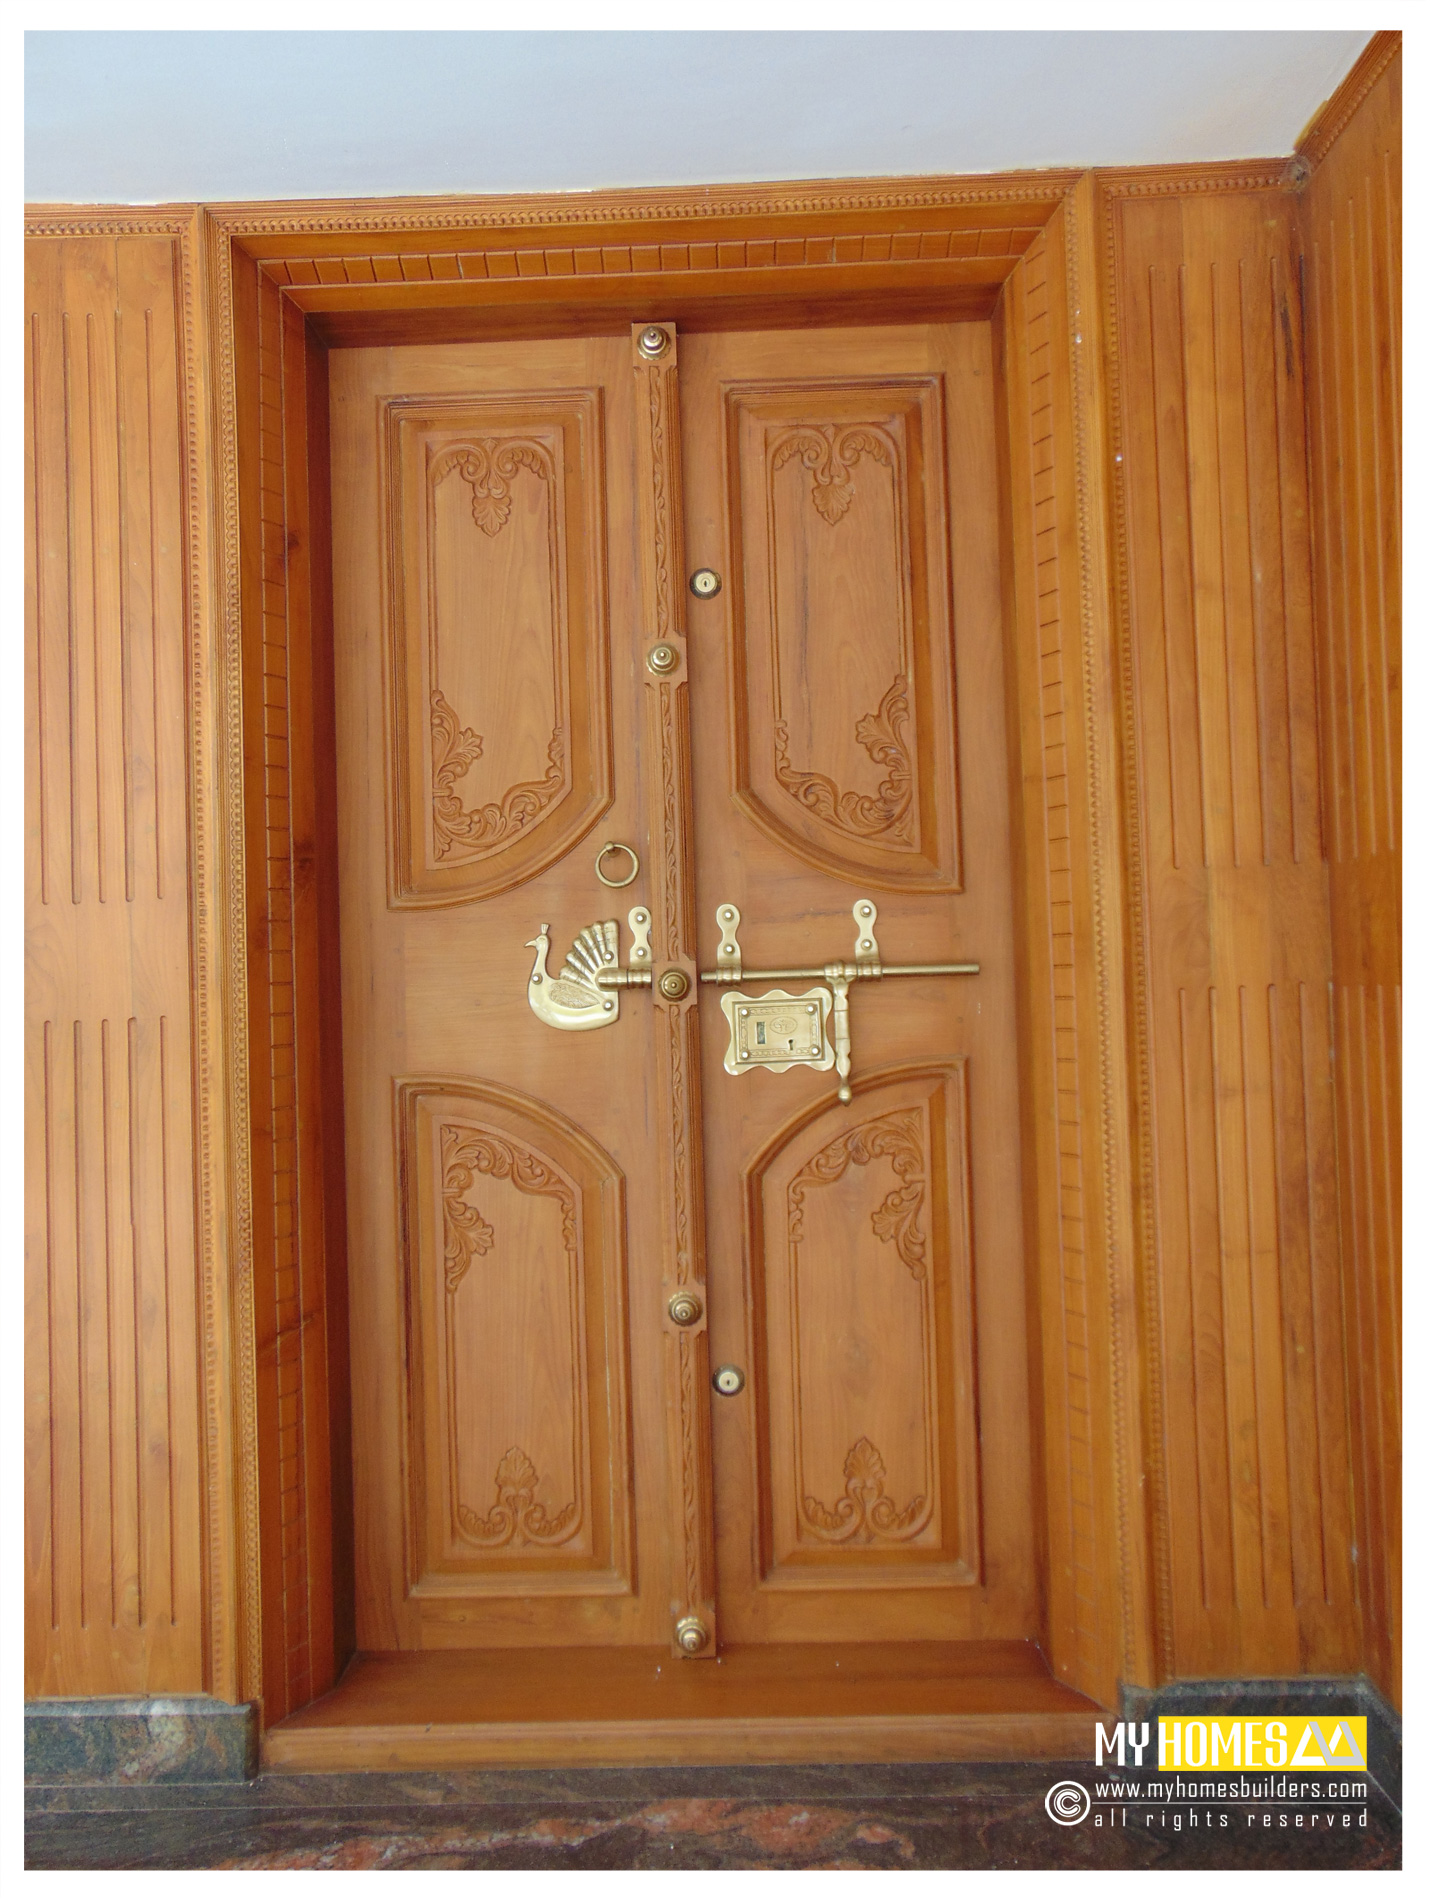 New idea for homes main door designs in kerala india for House main door design